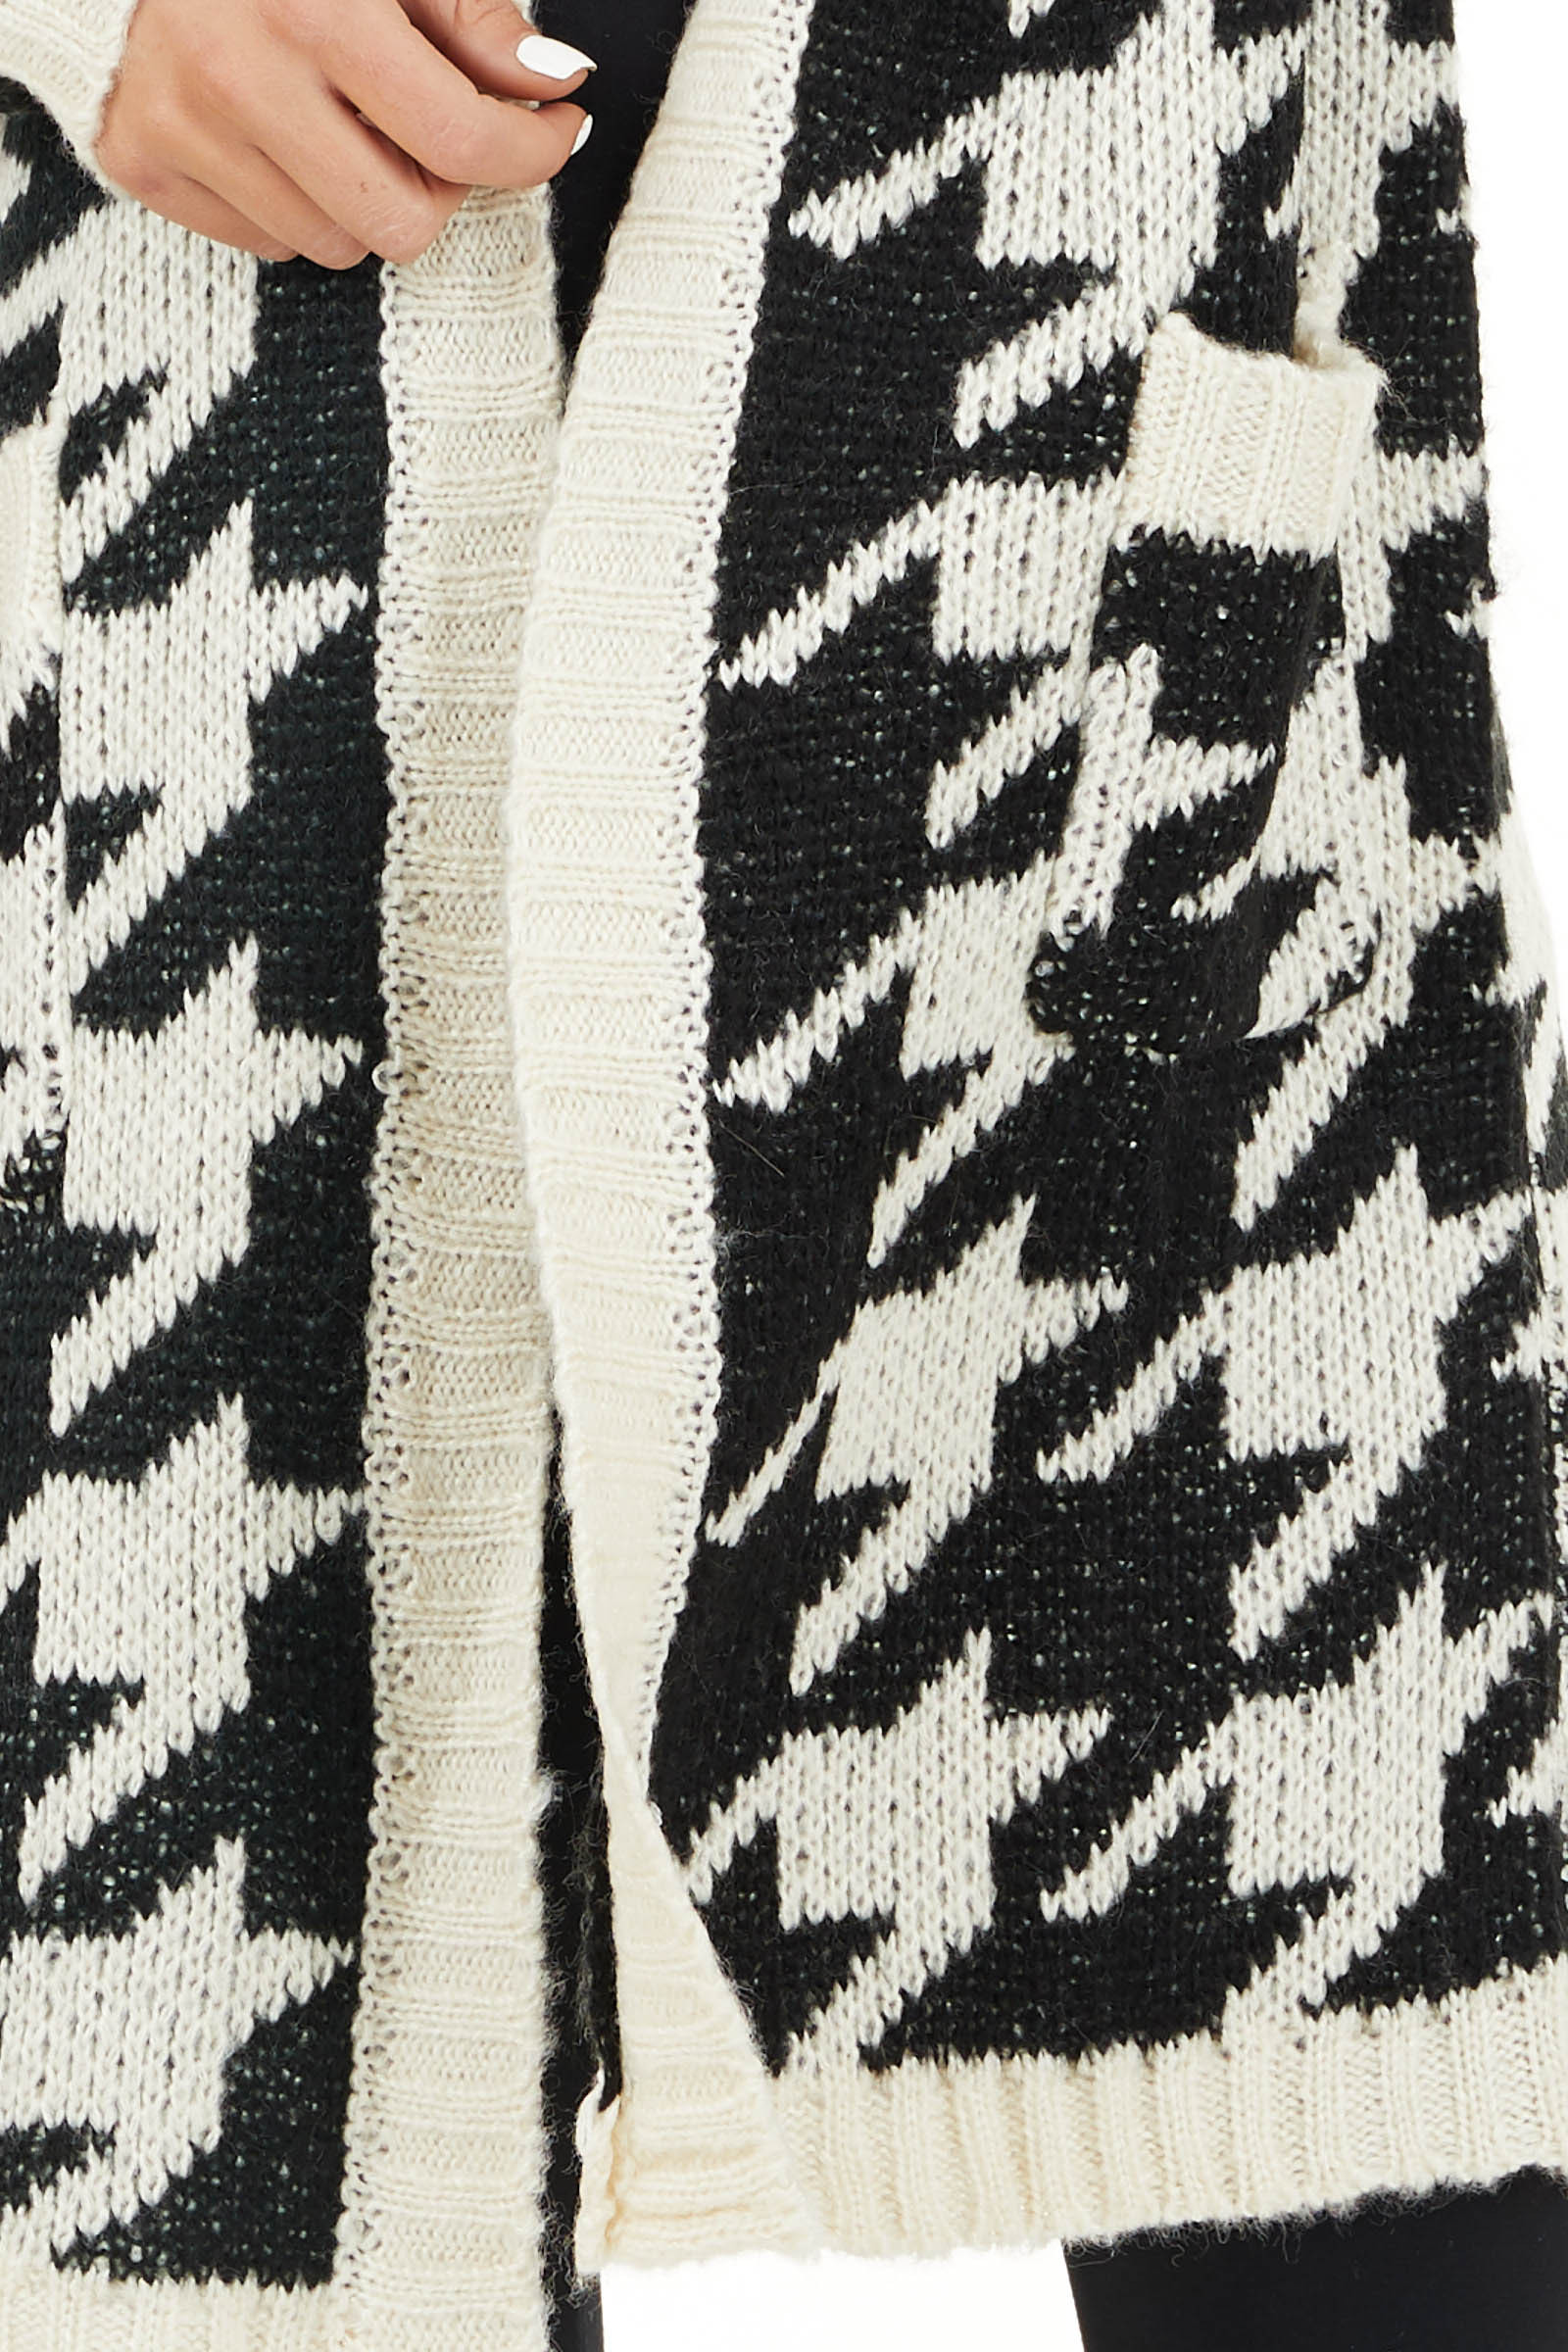 Black and Ivory Houndstooth Print Long Knit Cardigan detail